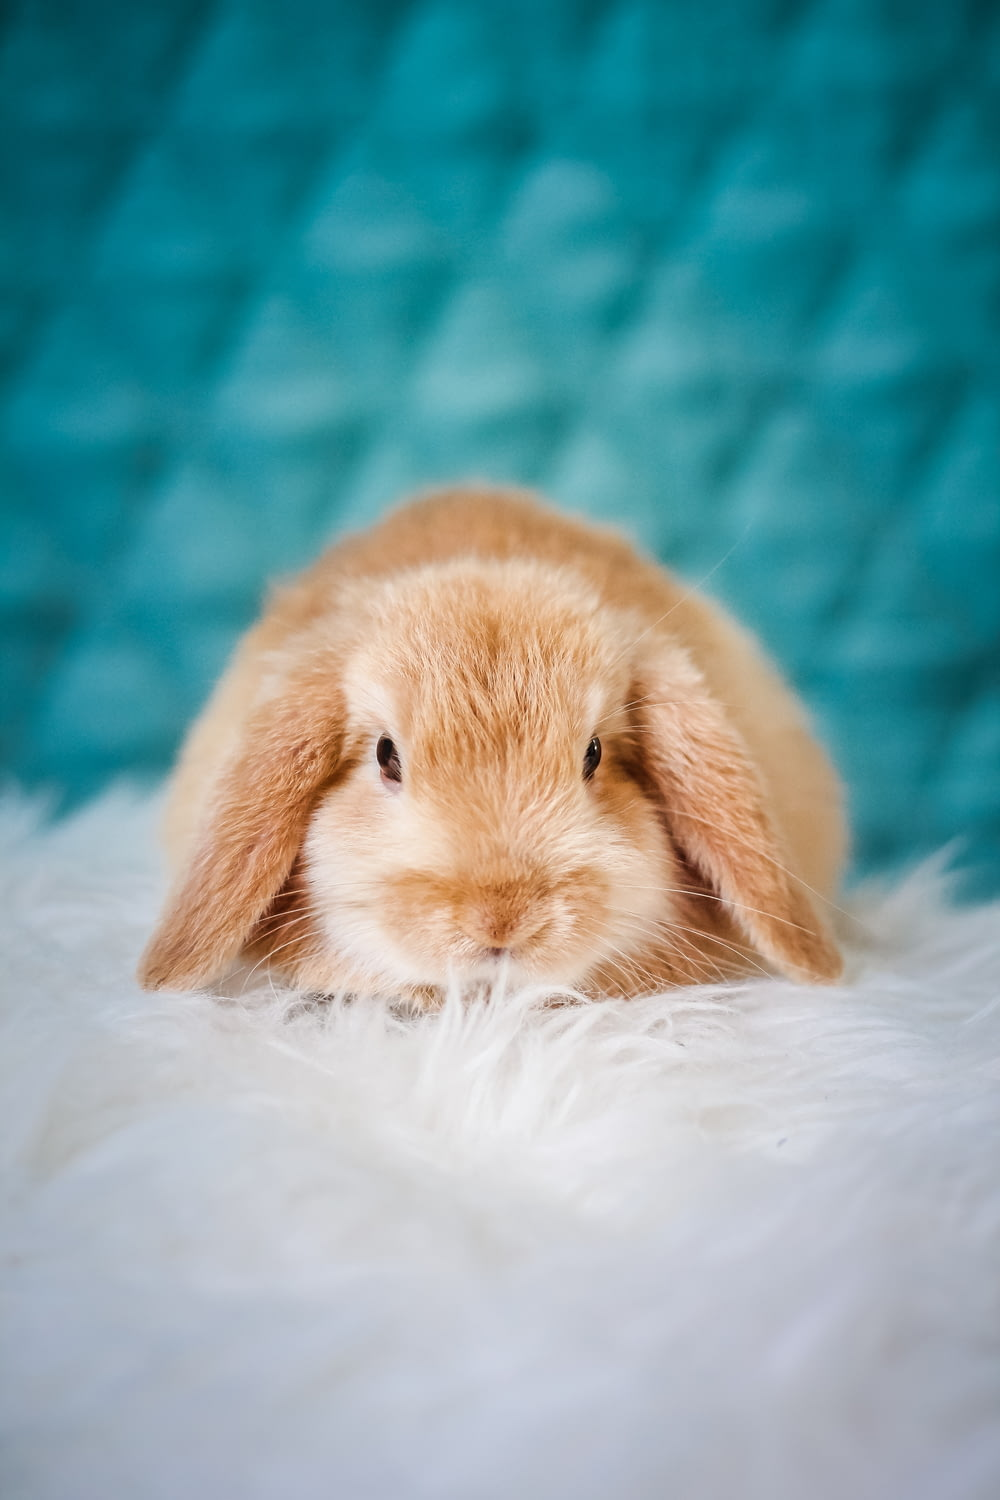 brown rabbit on white textile